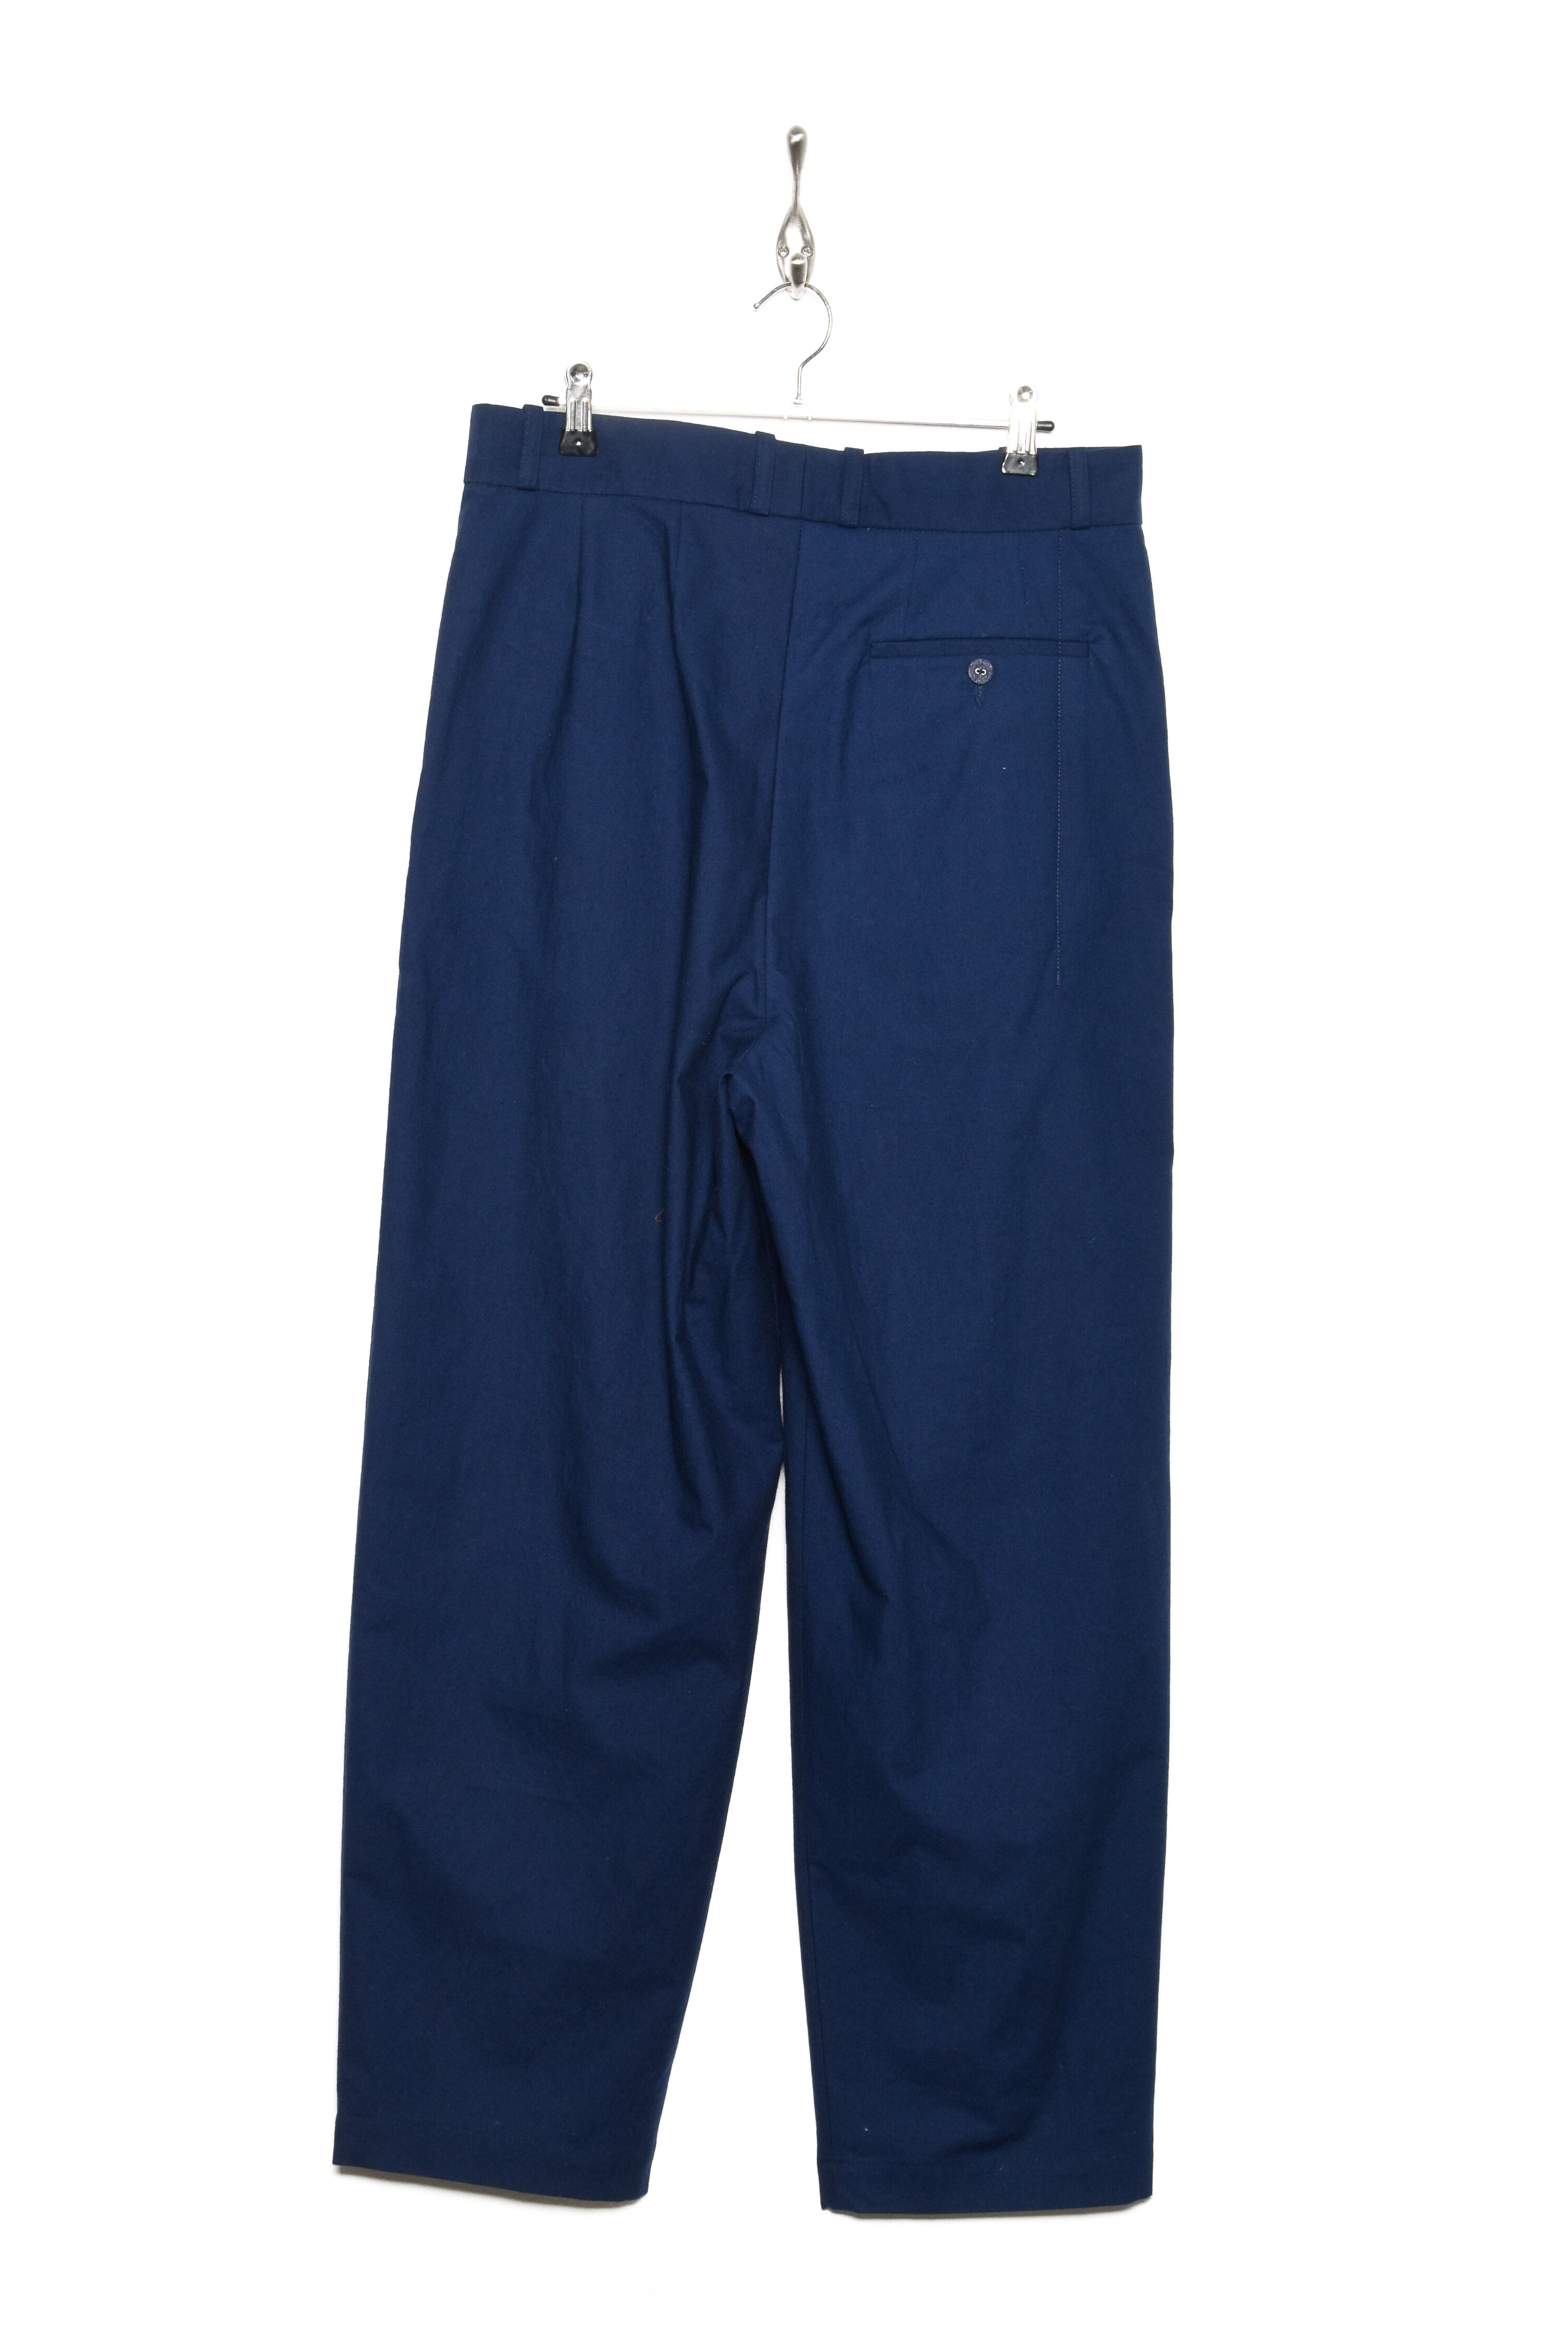 Frank Leder Double Pleated Trouser baltic blue dyed